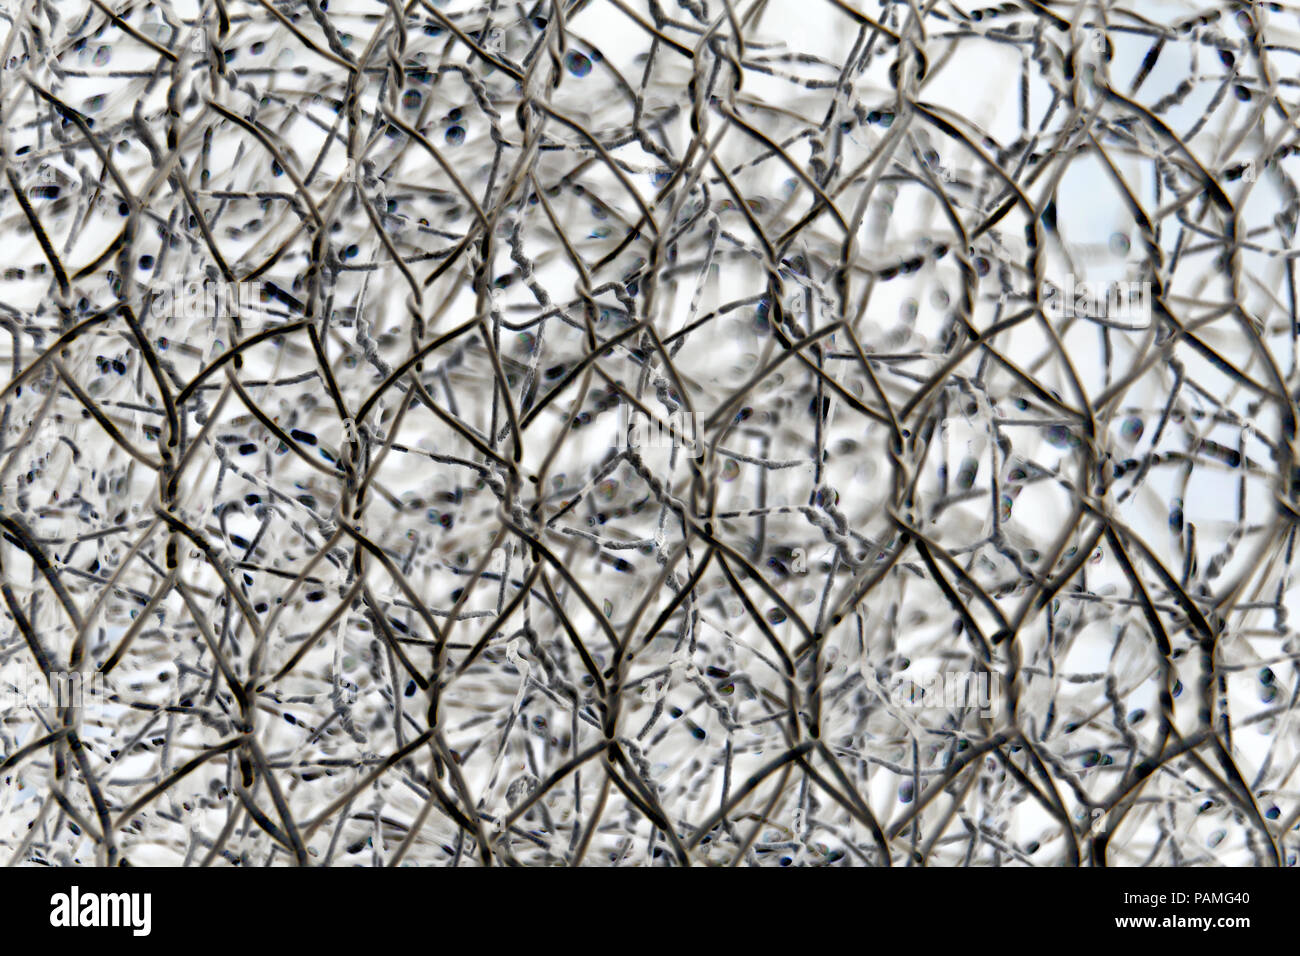 abstract background of a roll of a wire fence with contrasting ...